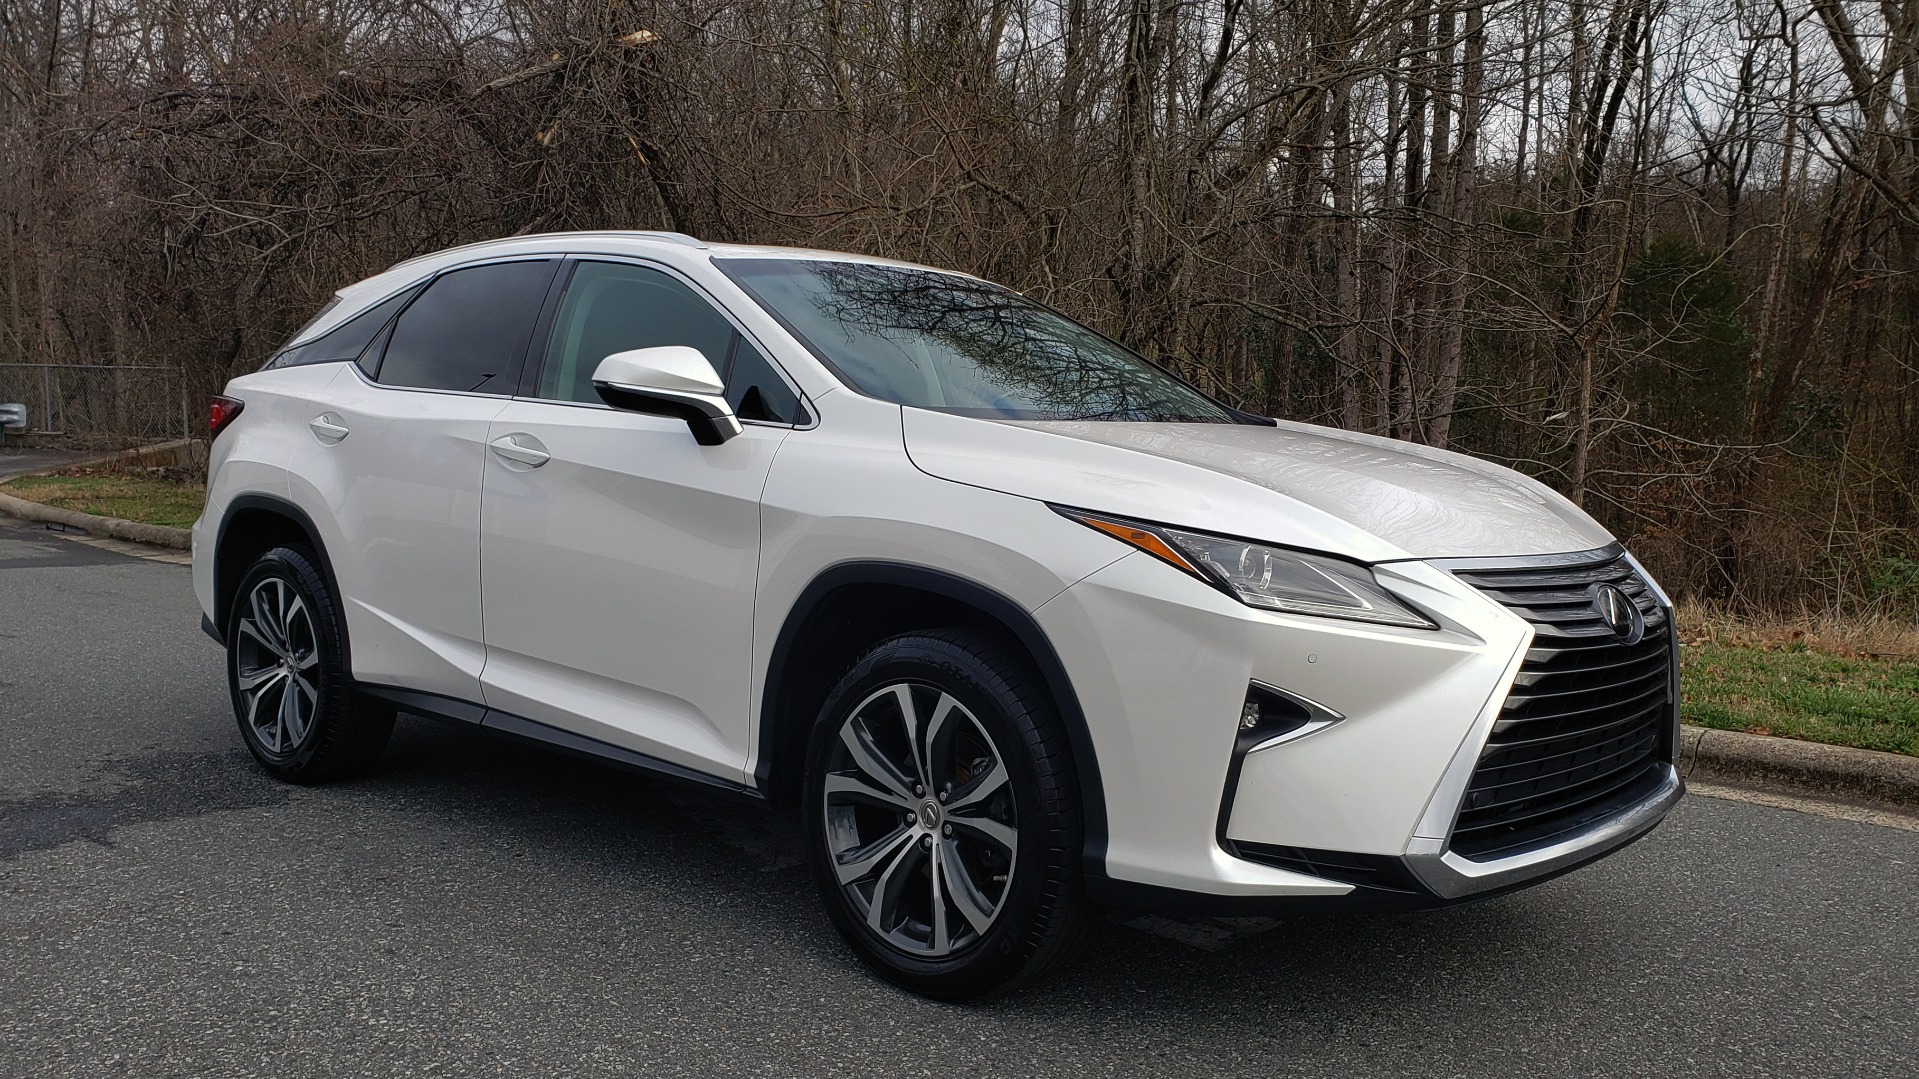 Used 2017 Lexus RX 350 PREMIUM / BSM / SNRF / VENT SEATS / REARVIEW for sale Sold at Formula Imports in Charlotte NC 28227 4